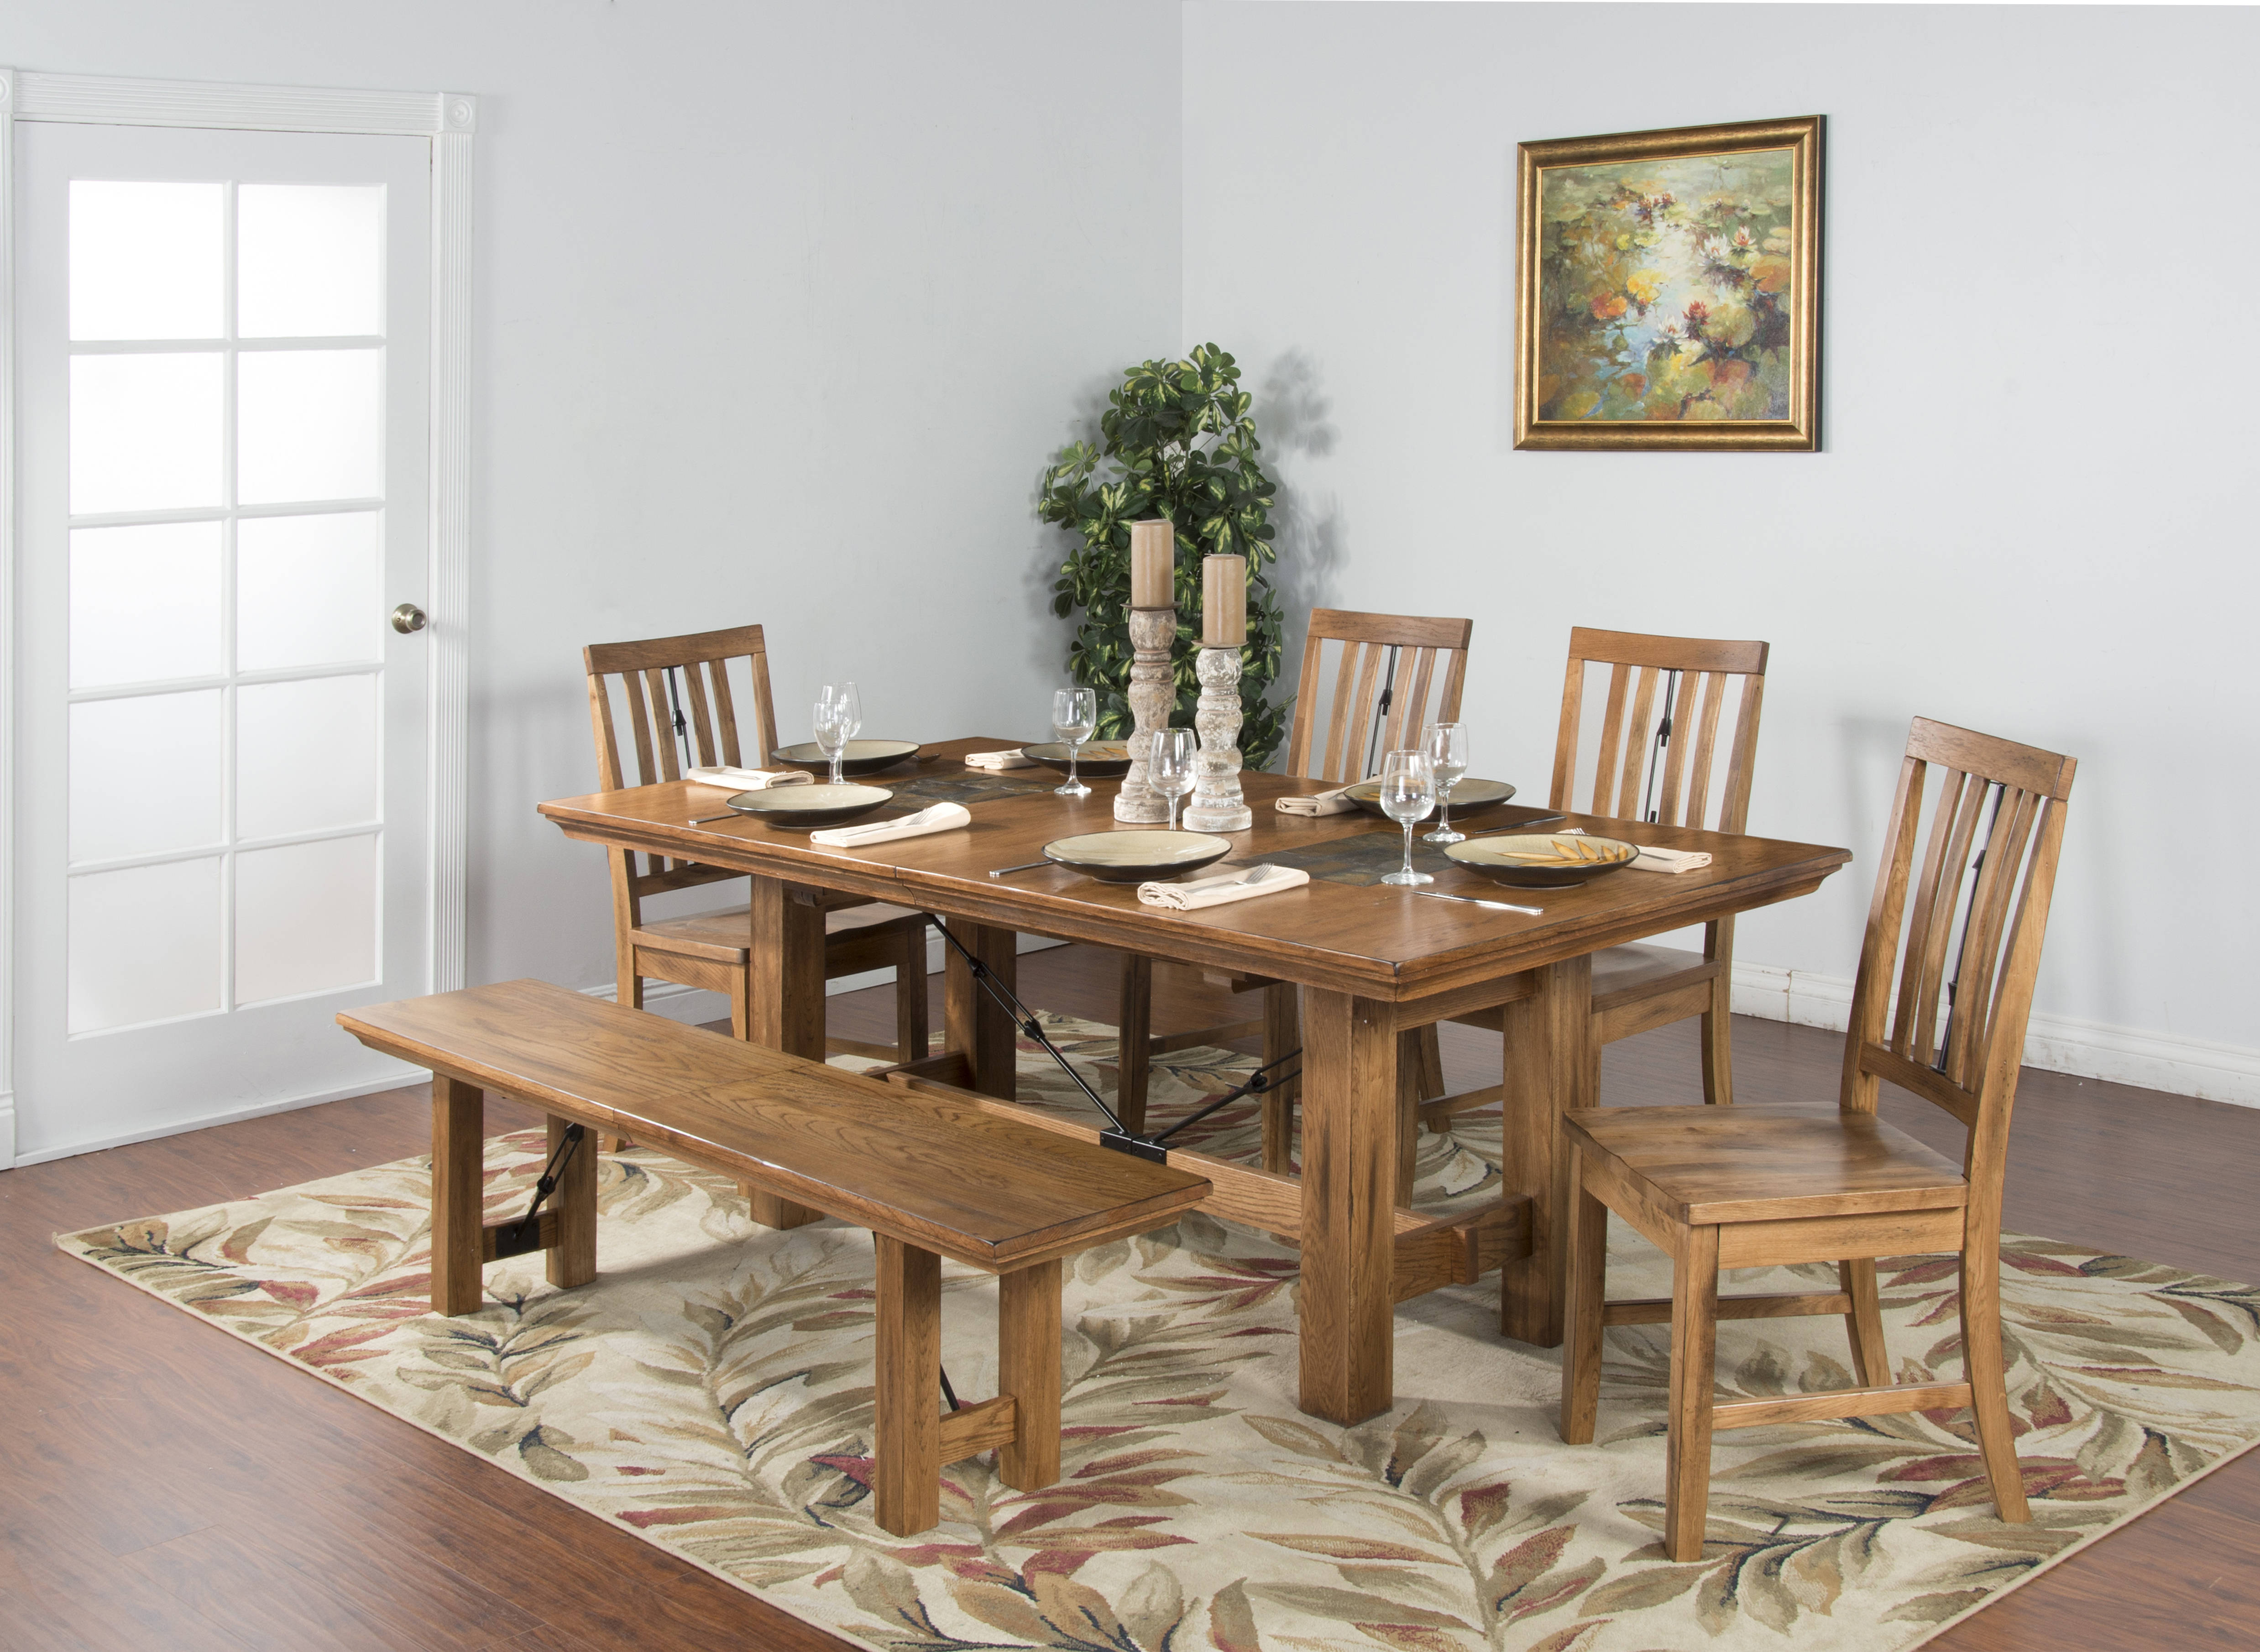 Sunny Designs Sedona Rustic Oak 6pc Dining Room Set The